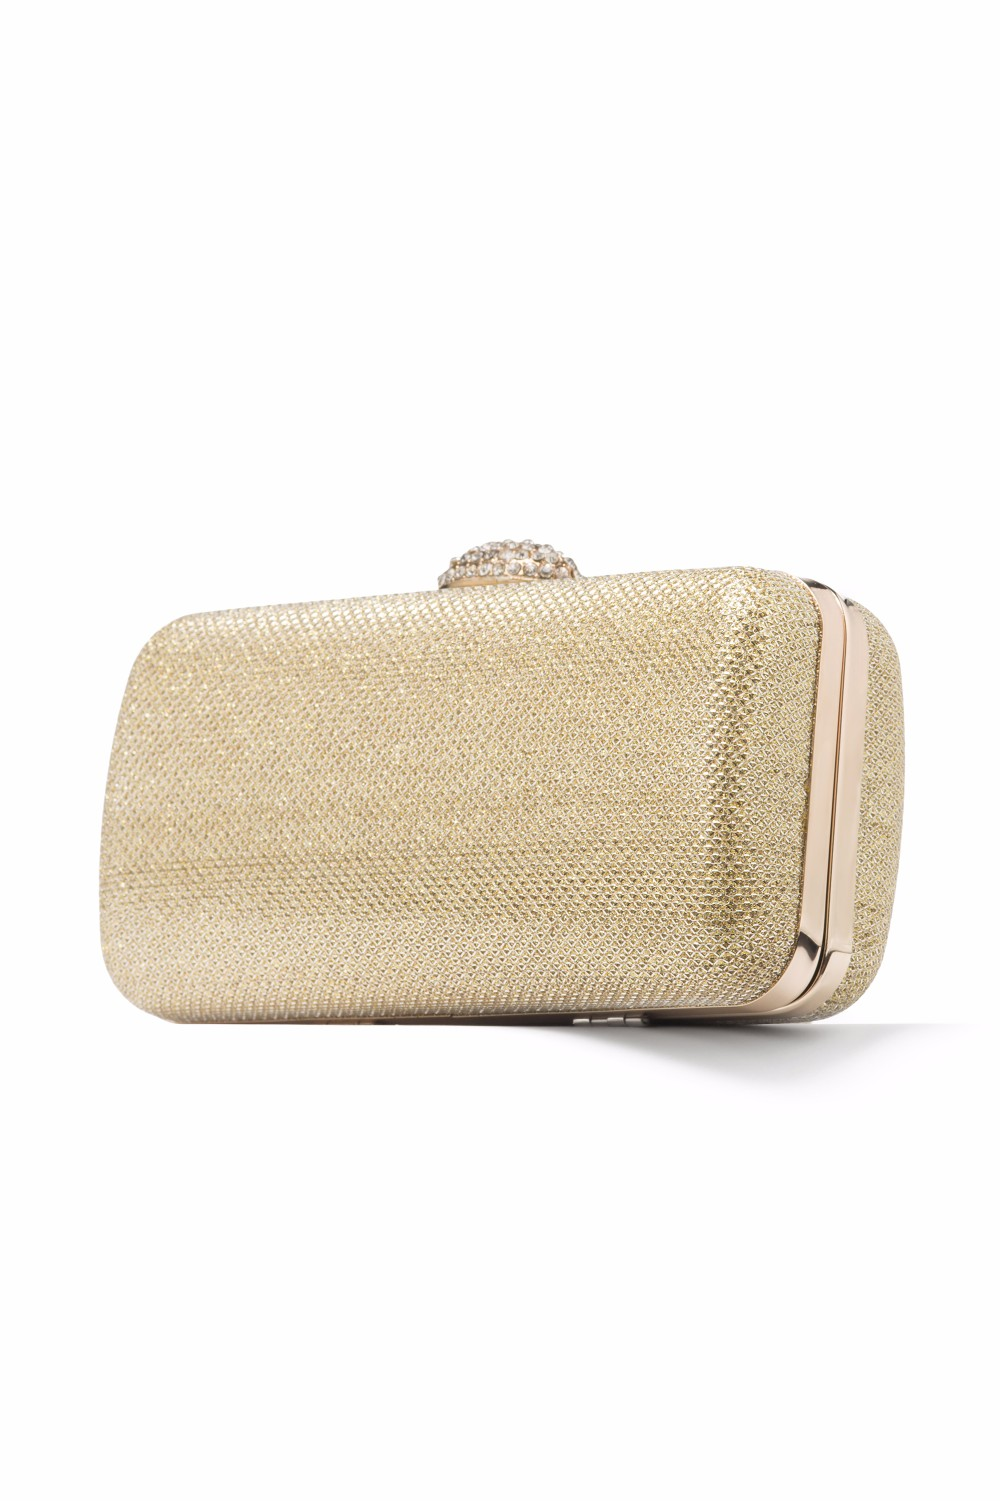 Clutch Purse Evening Bag for Women Prom Sparkling Handbag With Detachable Chain for Wedding and Party